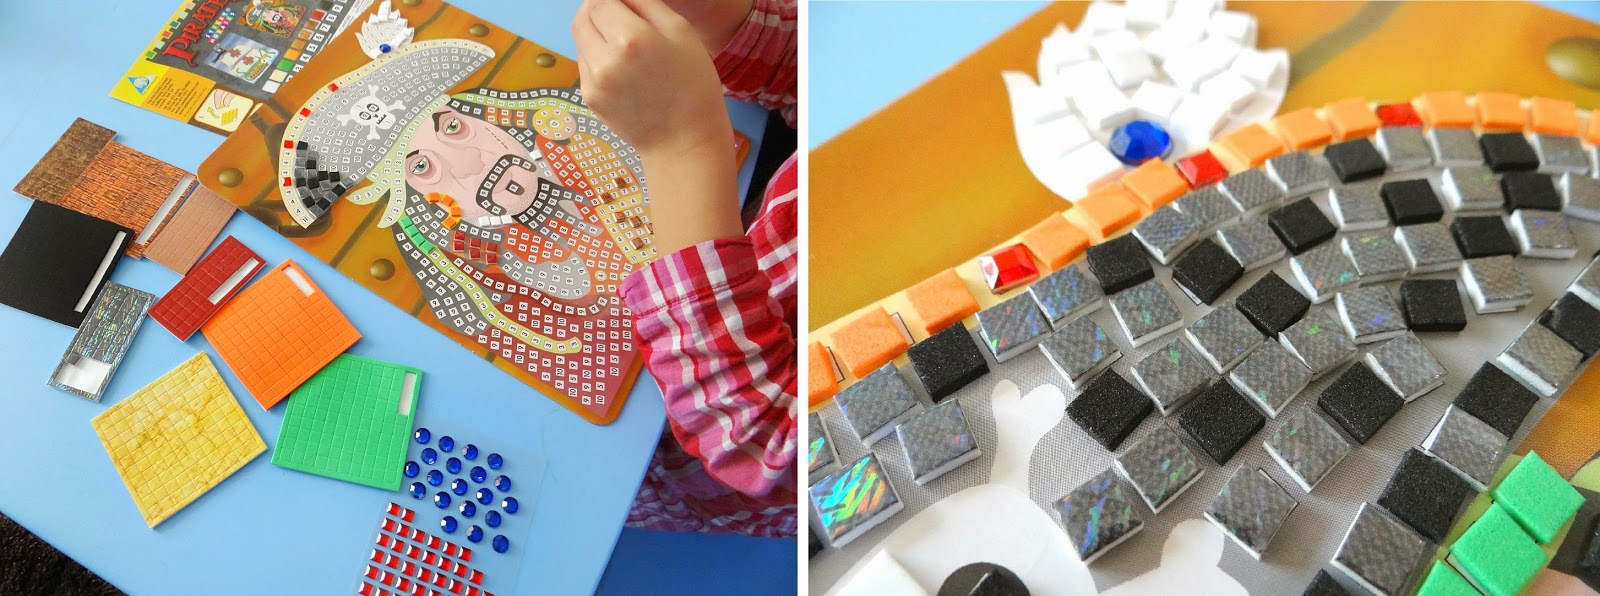 Asobi Toys, Children Art and Craft Kit, Mosaics by Numbers